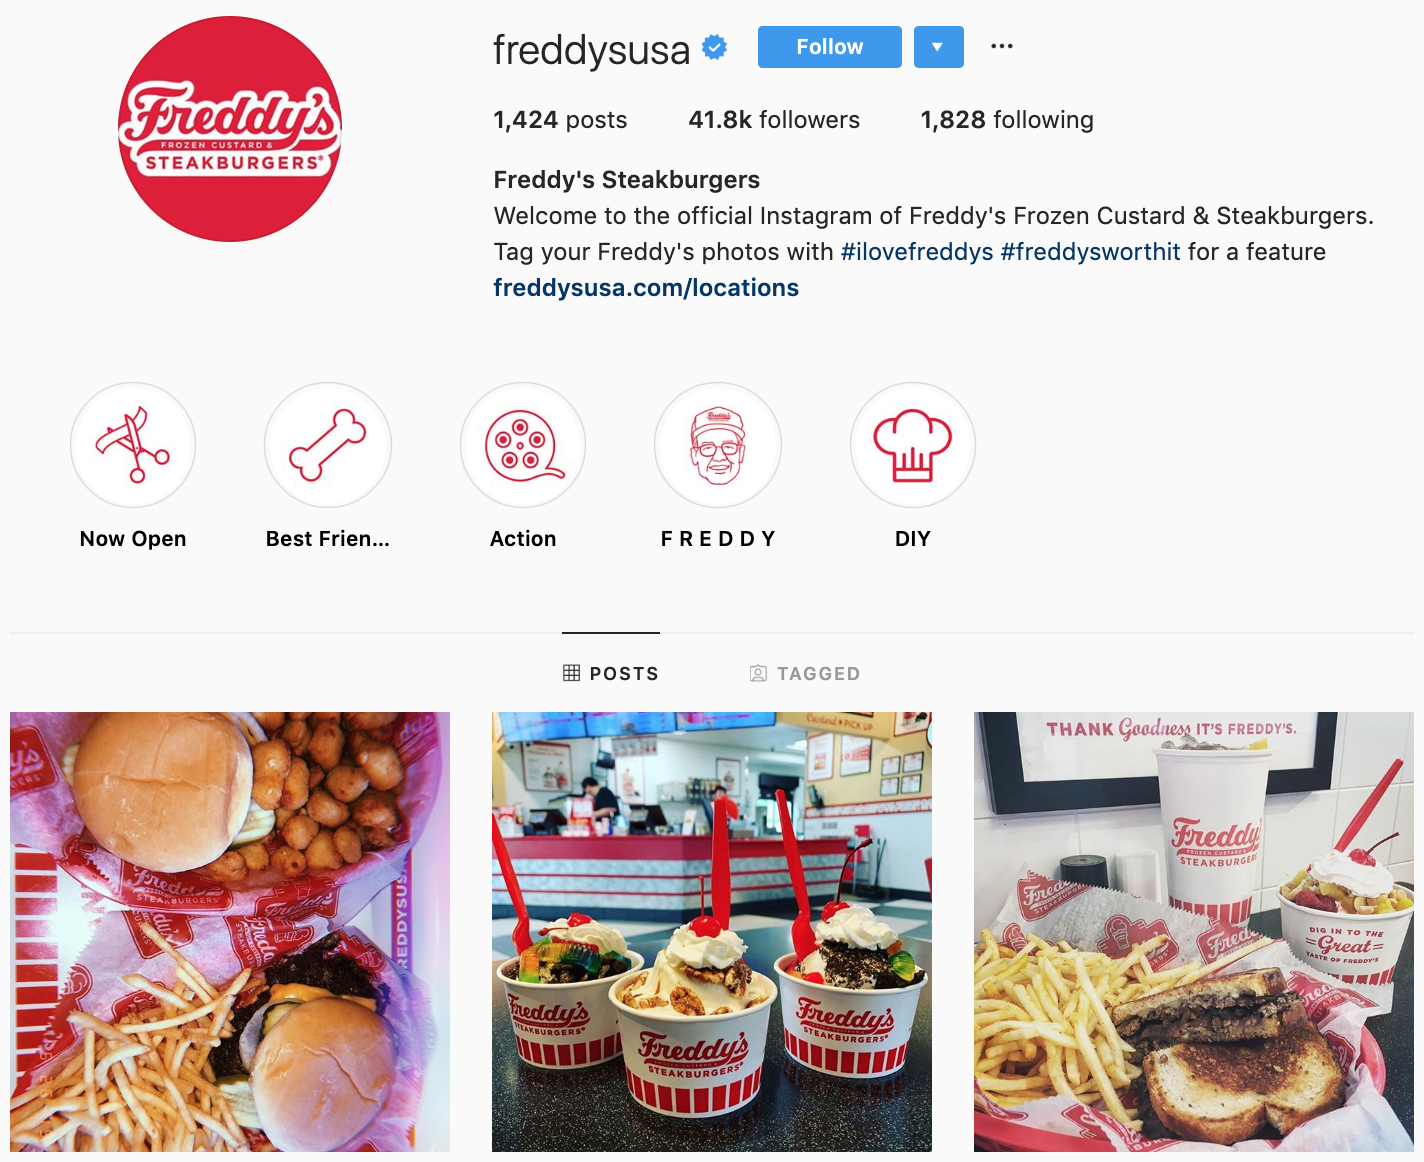 Freddy's on Instagram - Best Brands to Follow